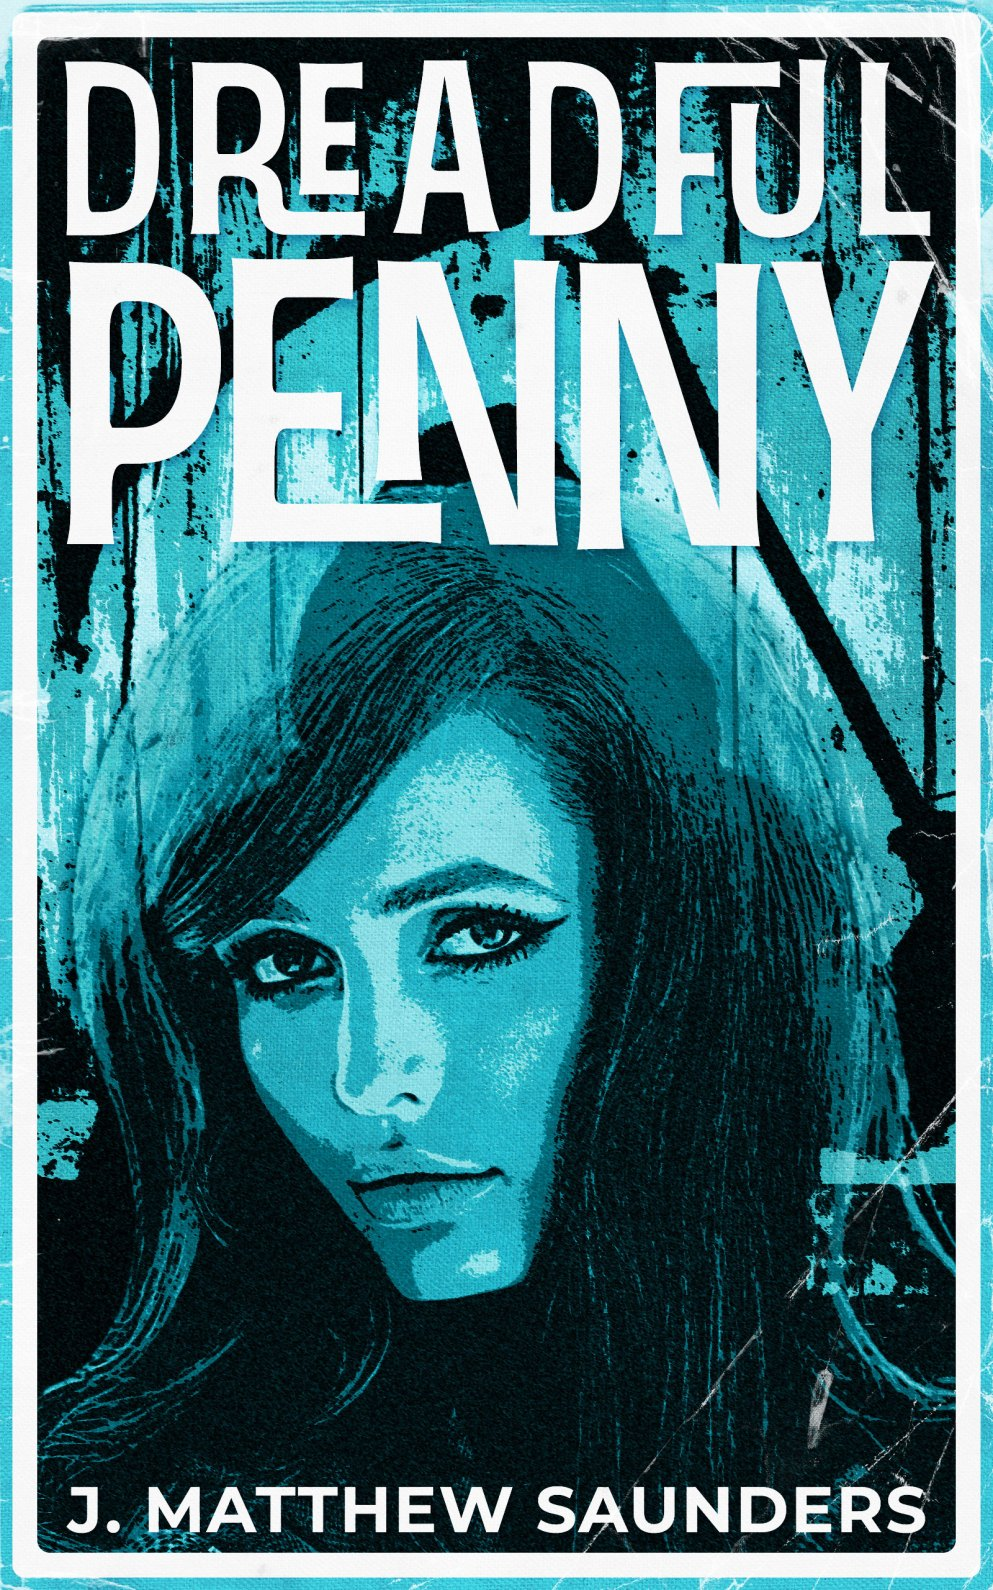 Dreadful Penny